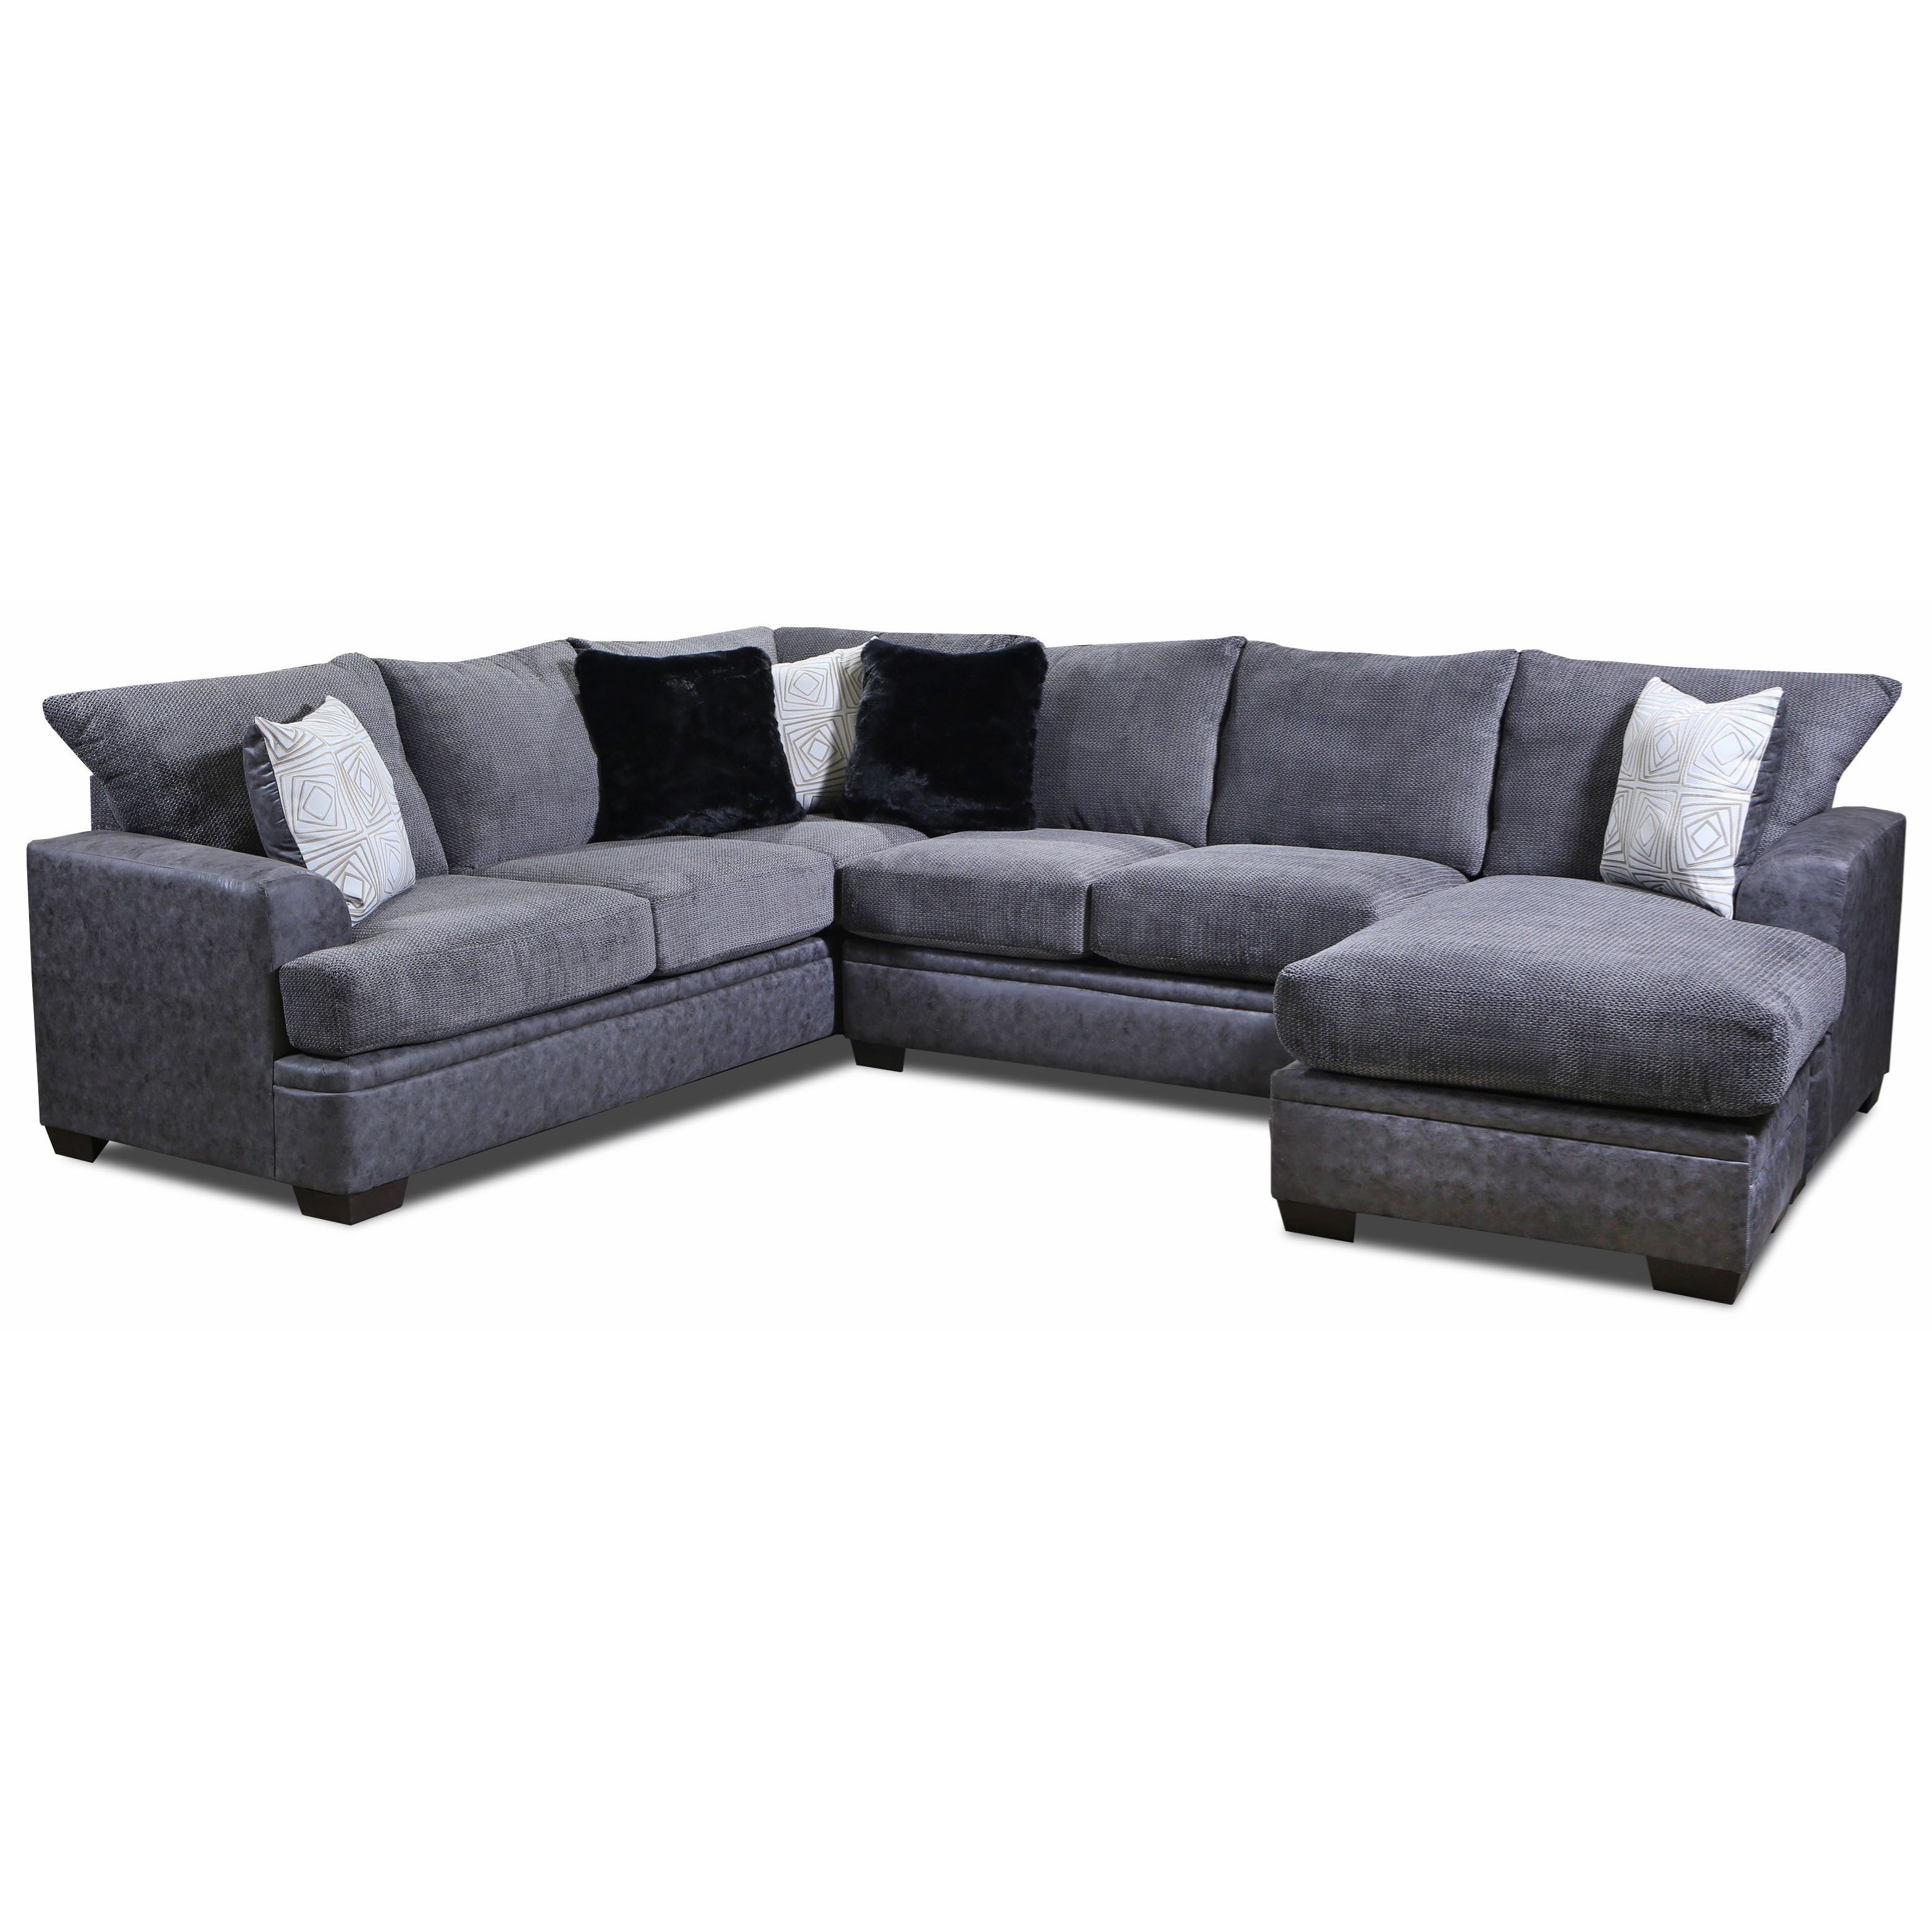 Perth - Akan Sectional Sofa with Right Side Chaise at Rotmans